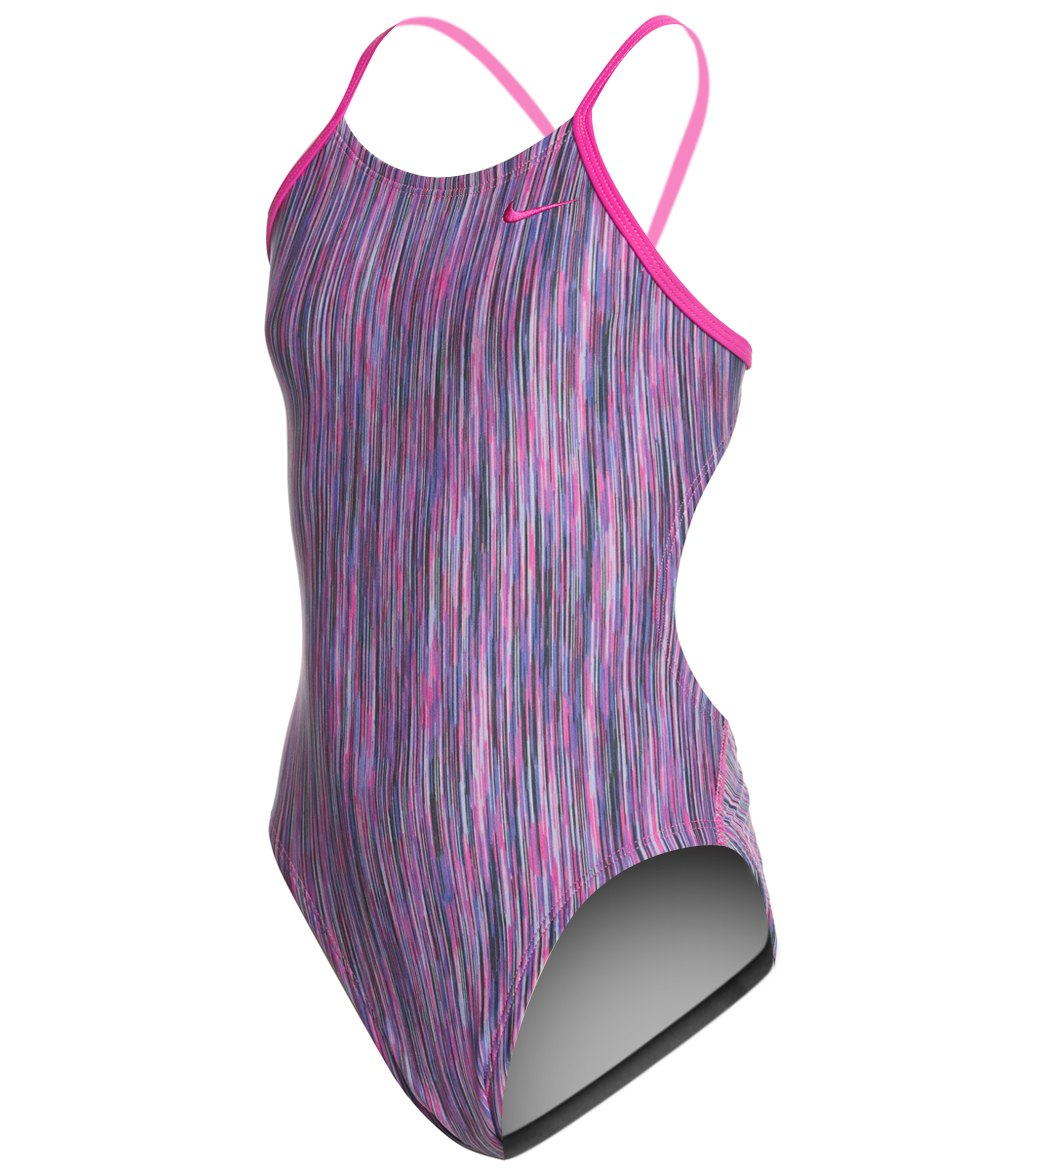 cc7aafa79ab Nike Girls  Rush Heather Cut Out One Piece Swimsuit at SwimOutlet ...